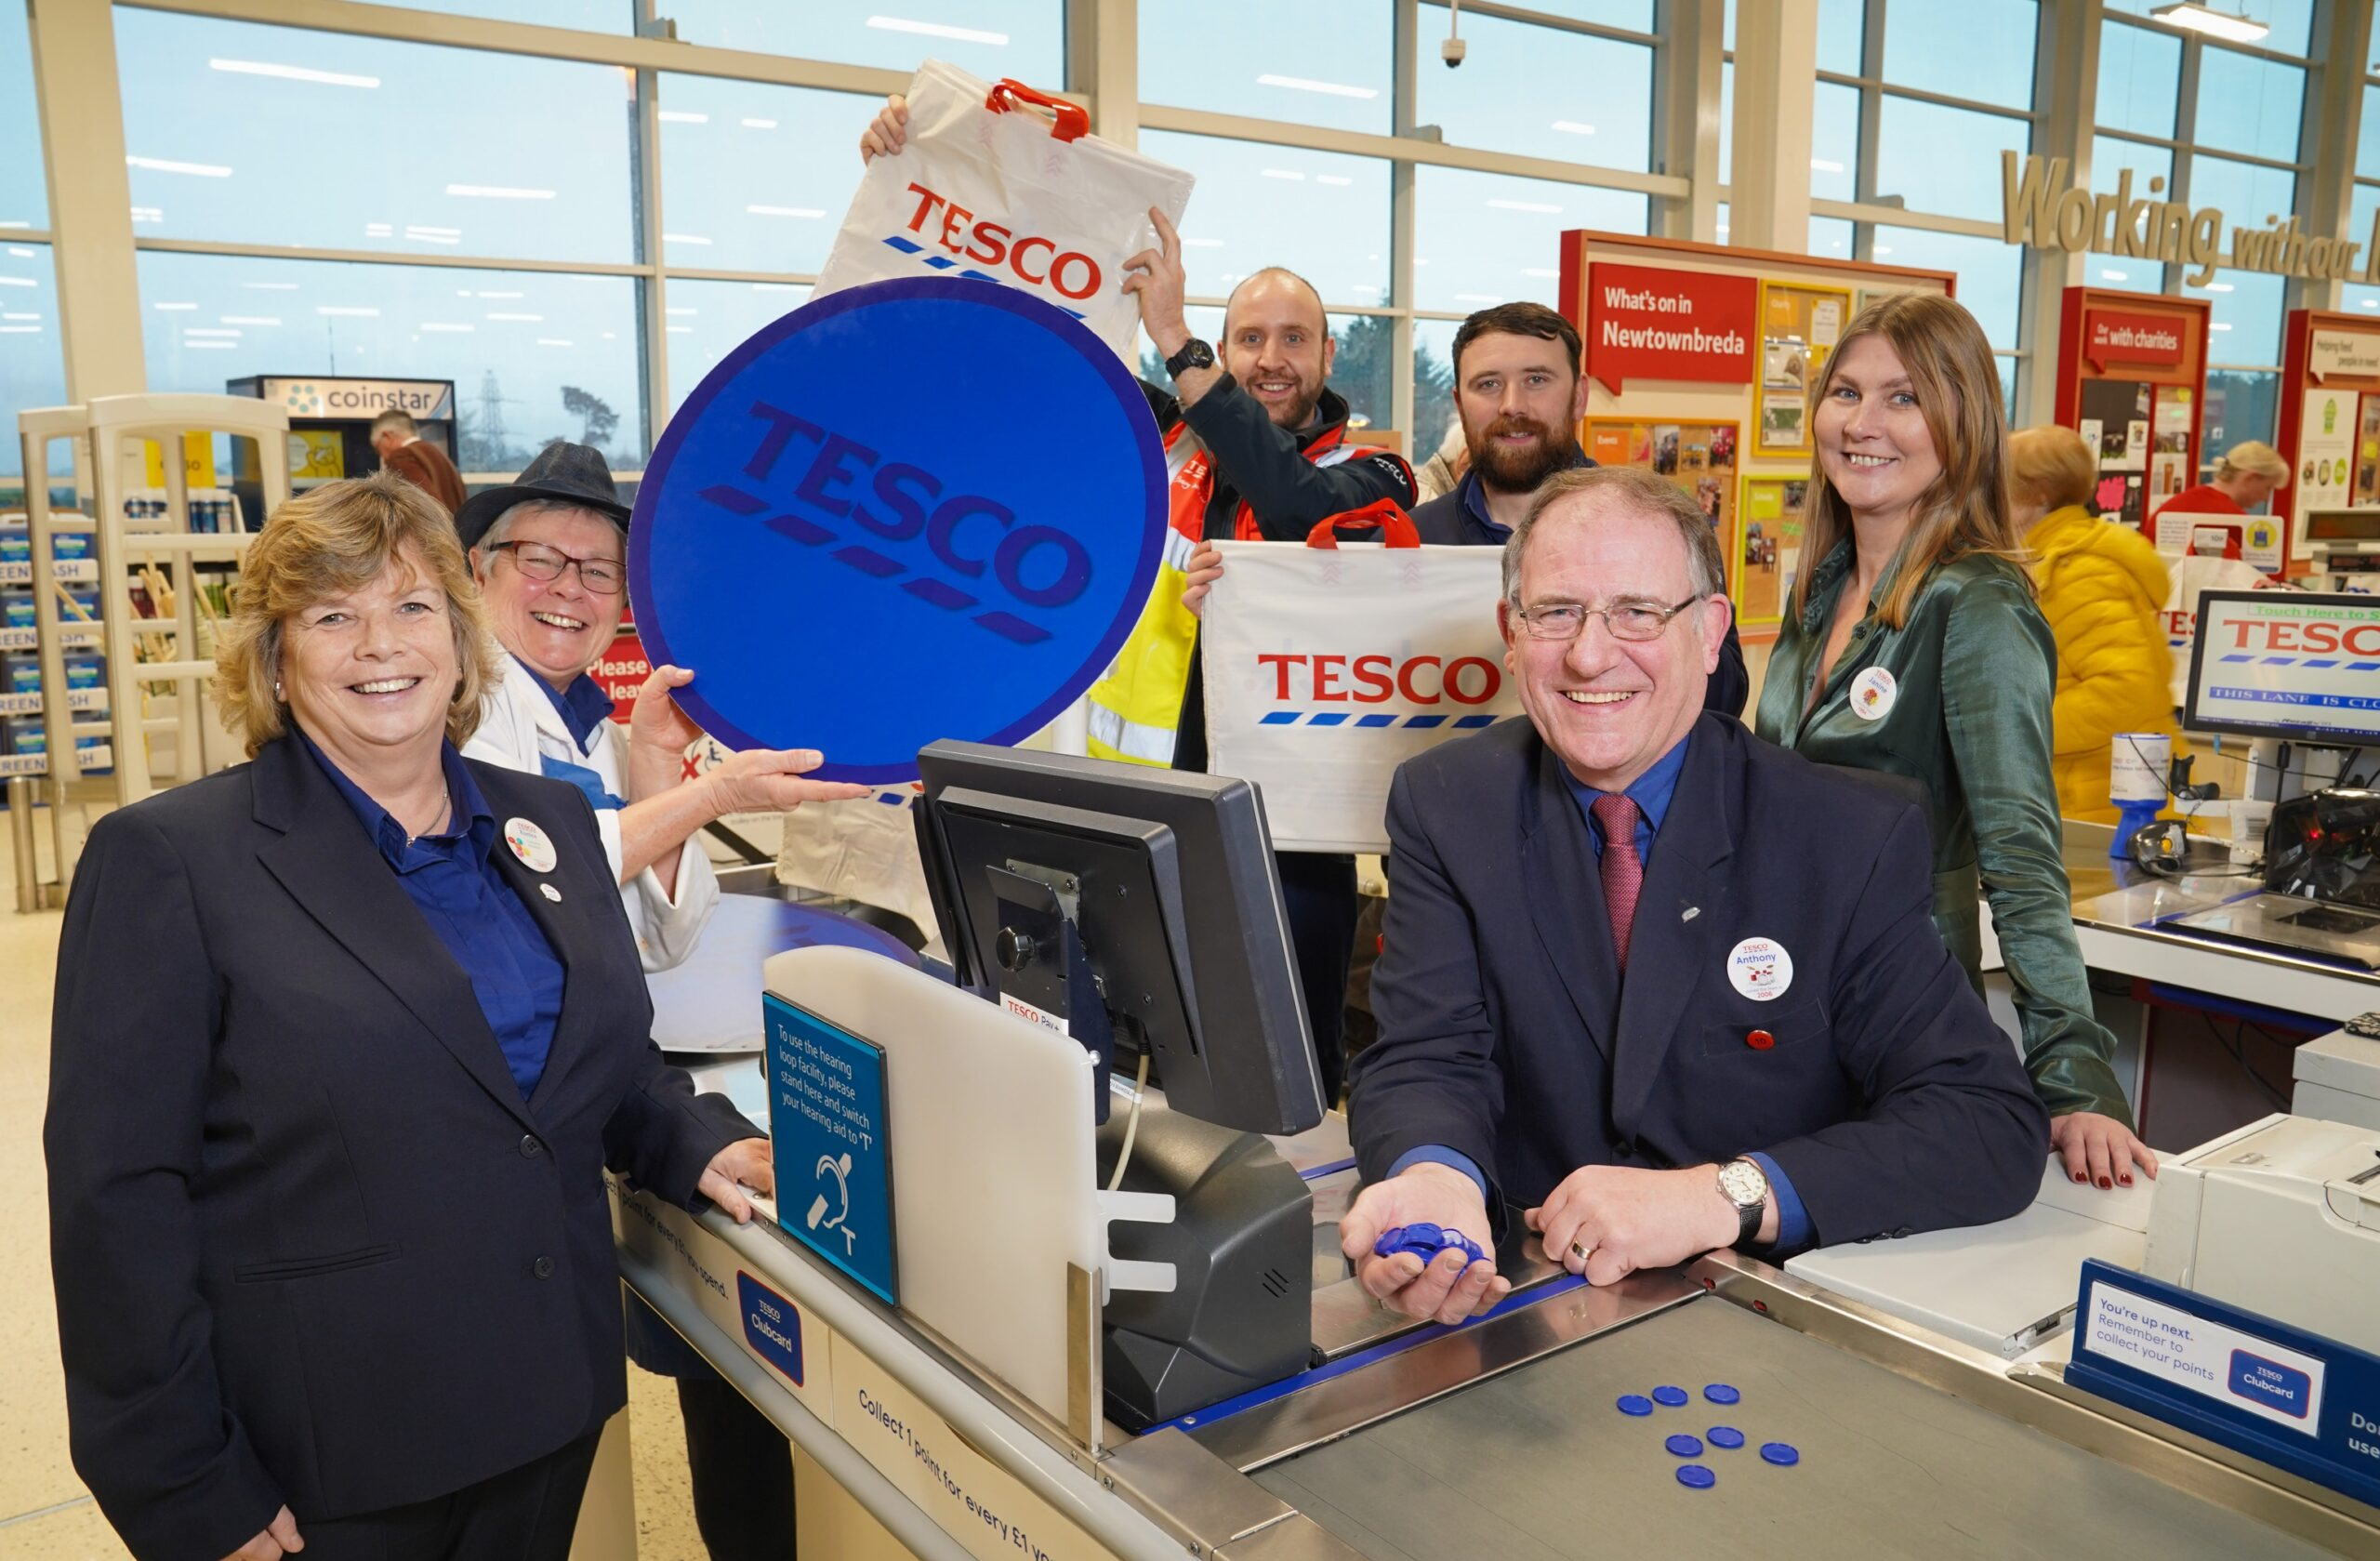 Tesco-Bags-of-Help-Northern-Ireland-Newry-Times-newspaper